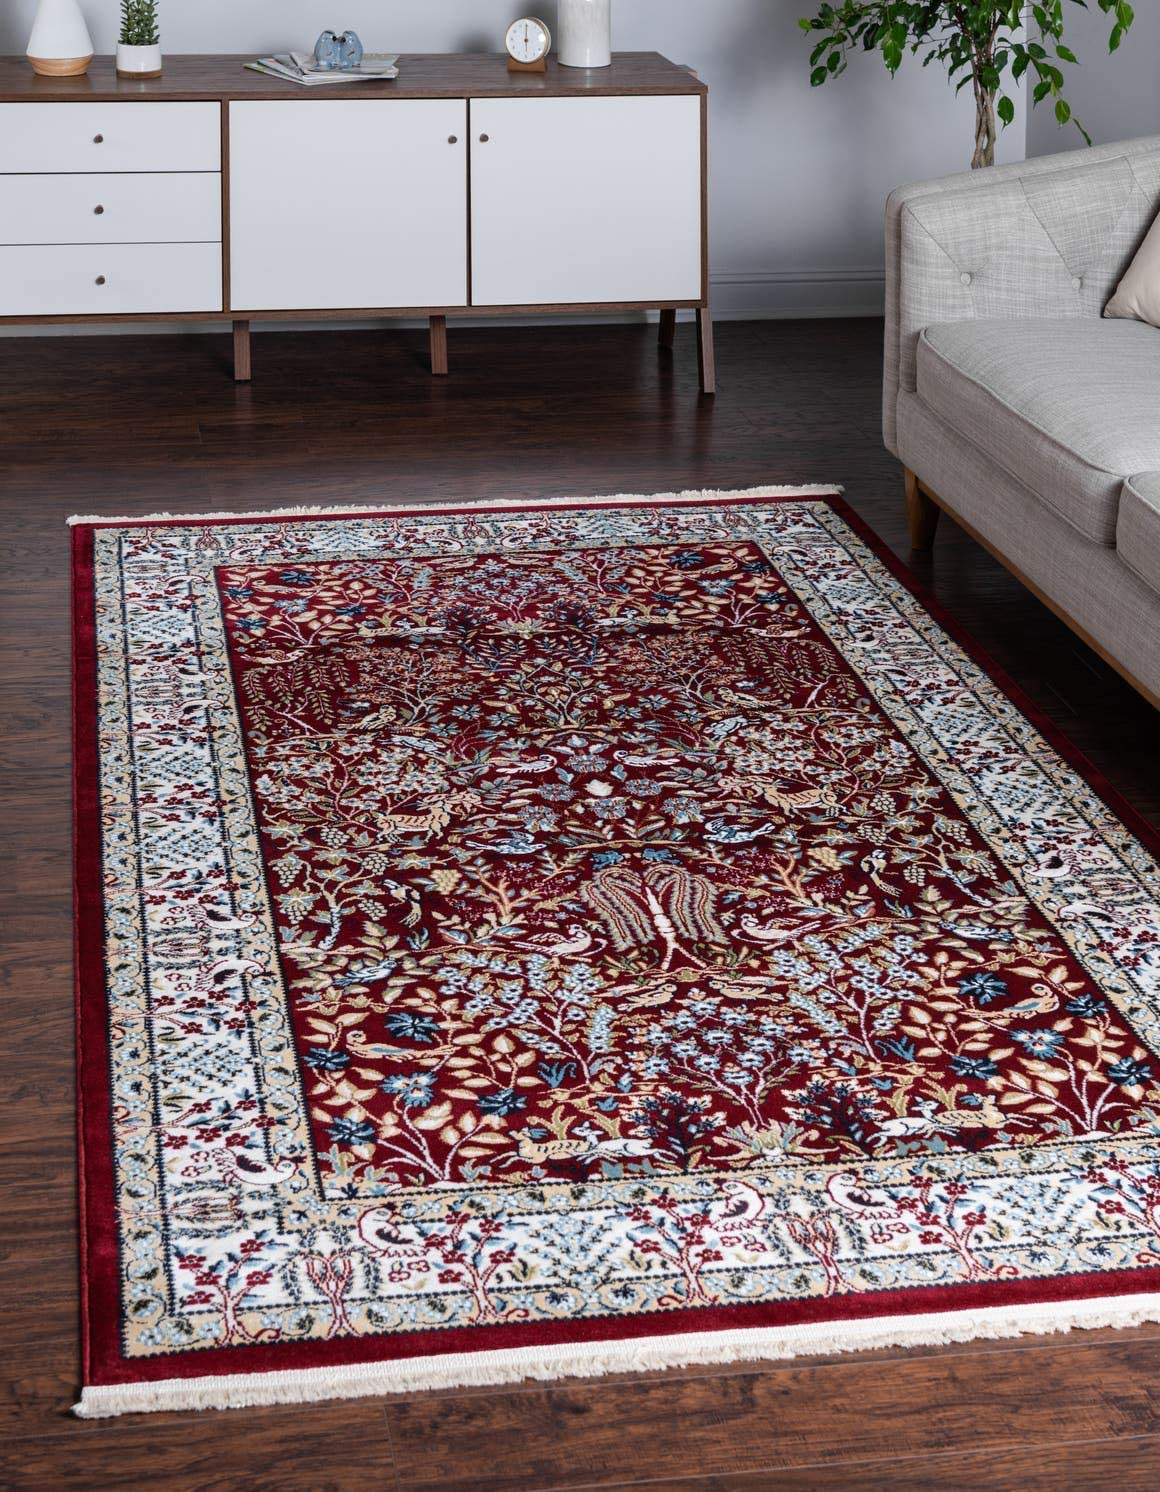 Unique Loom Narenj Collection Classic Traditional Hunting Scene Textured Burgundy Area Rug 8 0 x 10 0